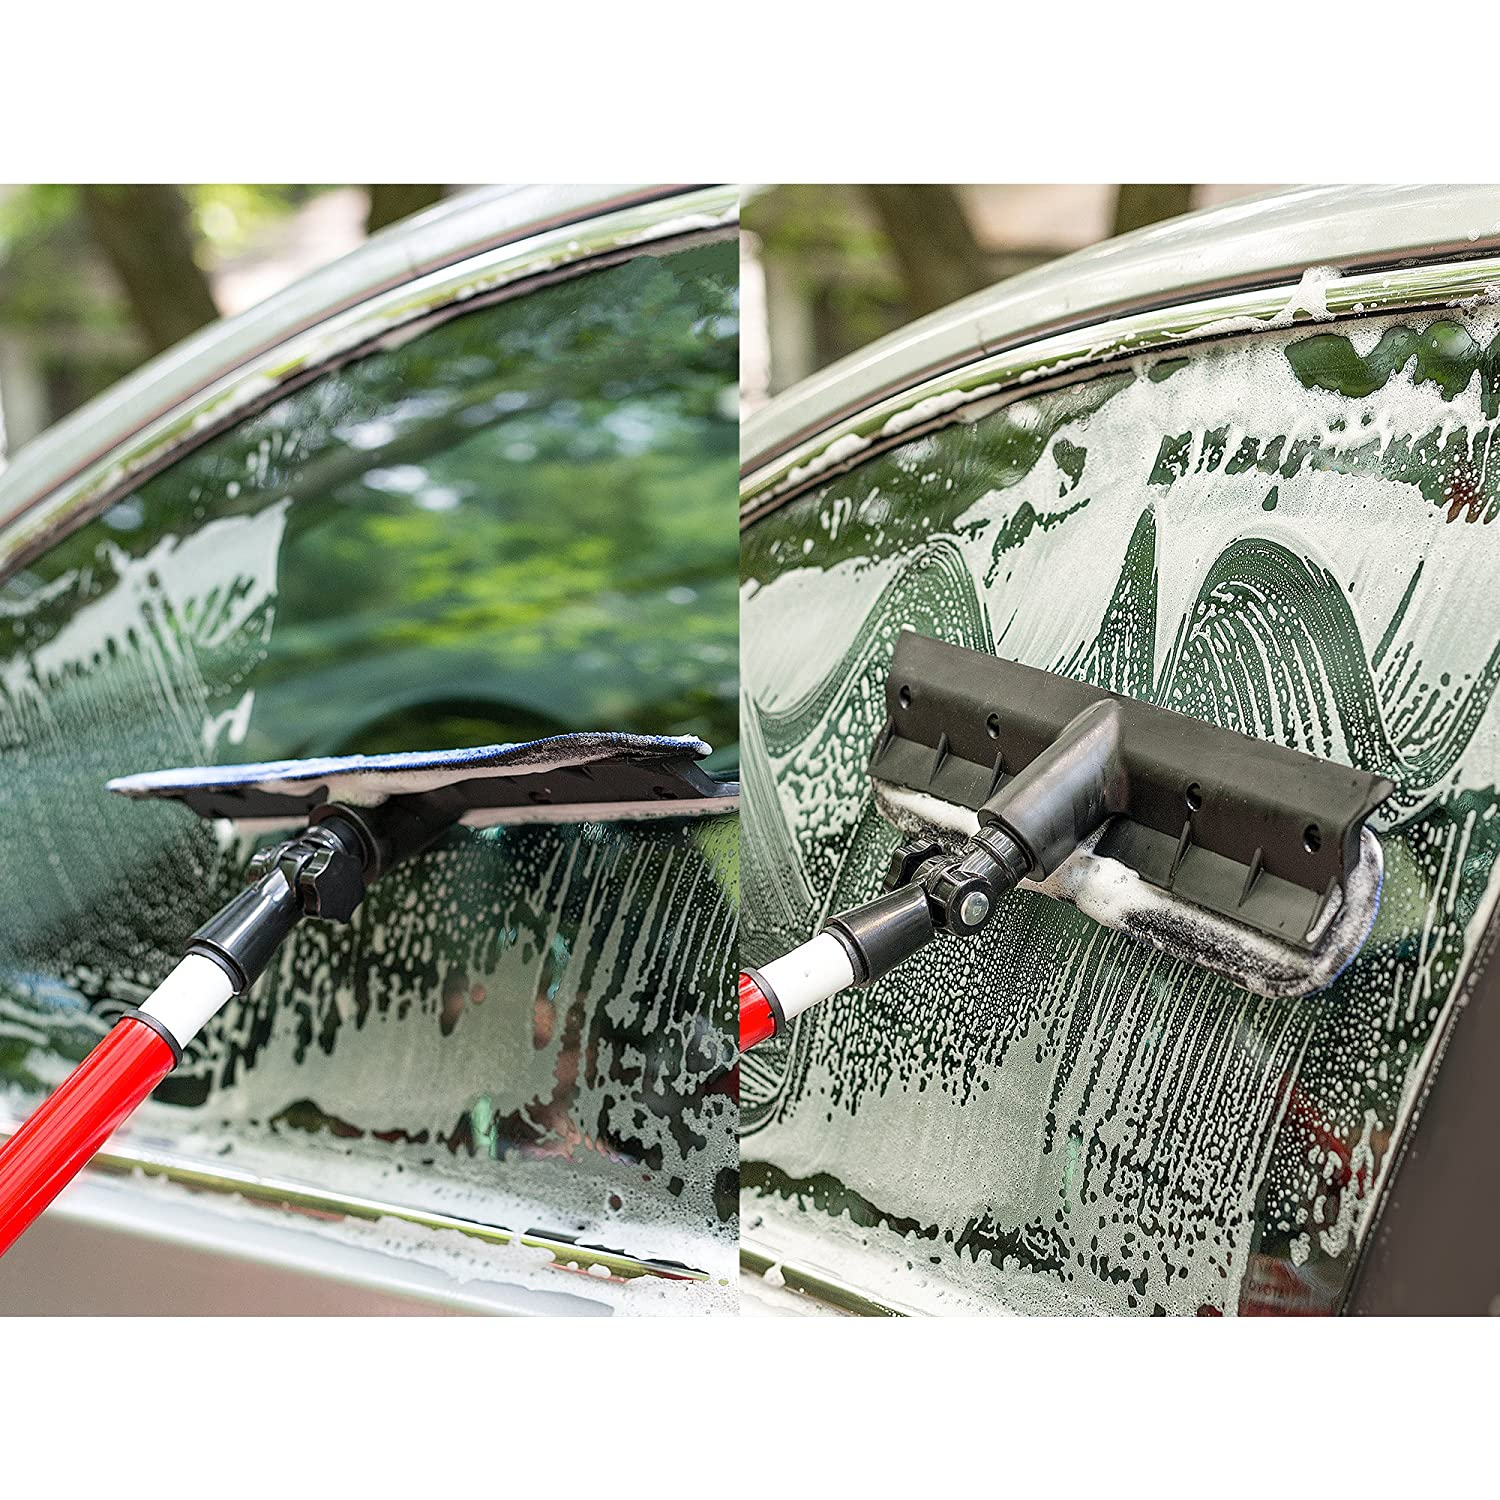 2 in 1 Telescoping Window Washing Equipment Microfiber Cloth /& Rubber Squeegee Tool Pivoting Cleaning Head 5ft Long Telescopic Pole Best Cleaner for Windows// Mirror// Glass Door// Car// RV Windshield RAVMAG AX-AY-ABHI-30453